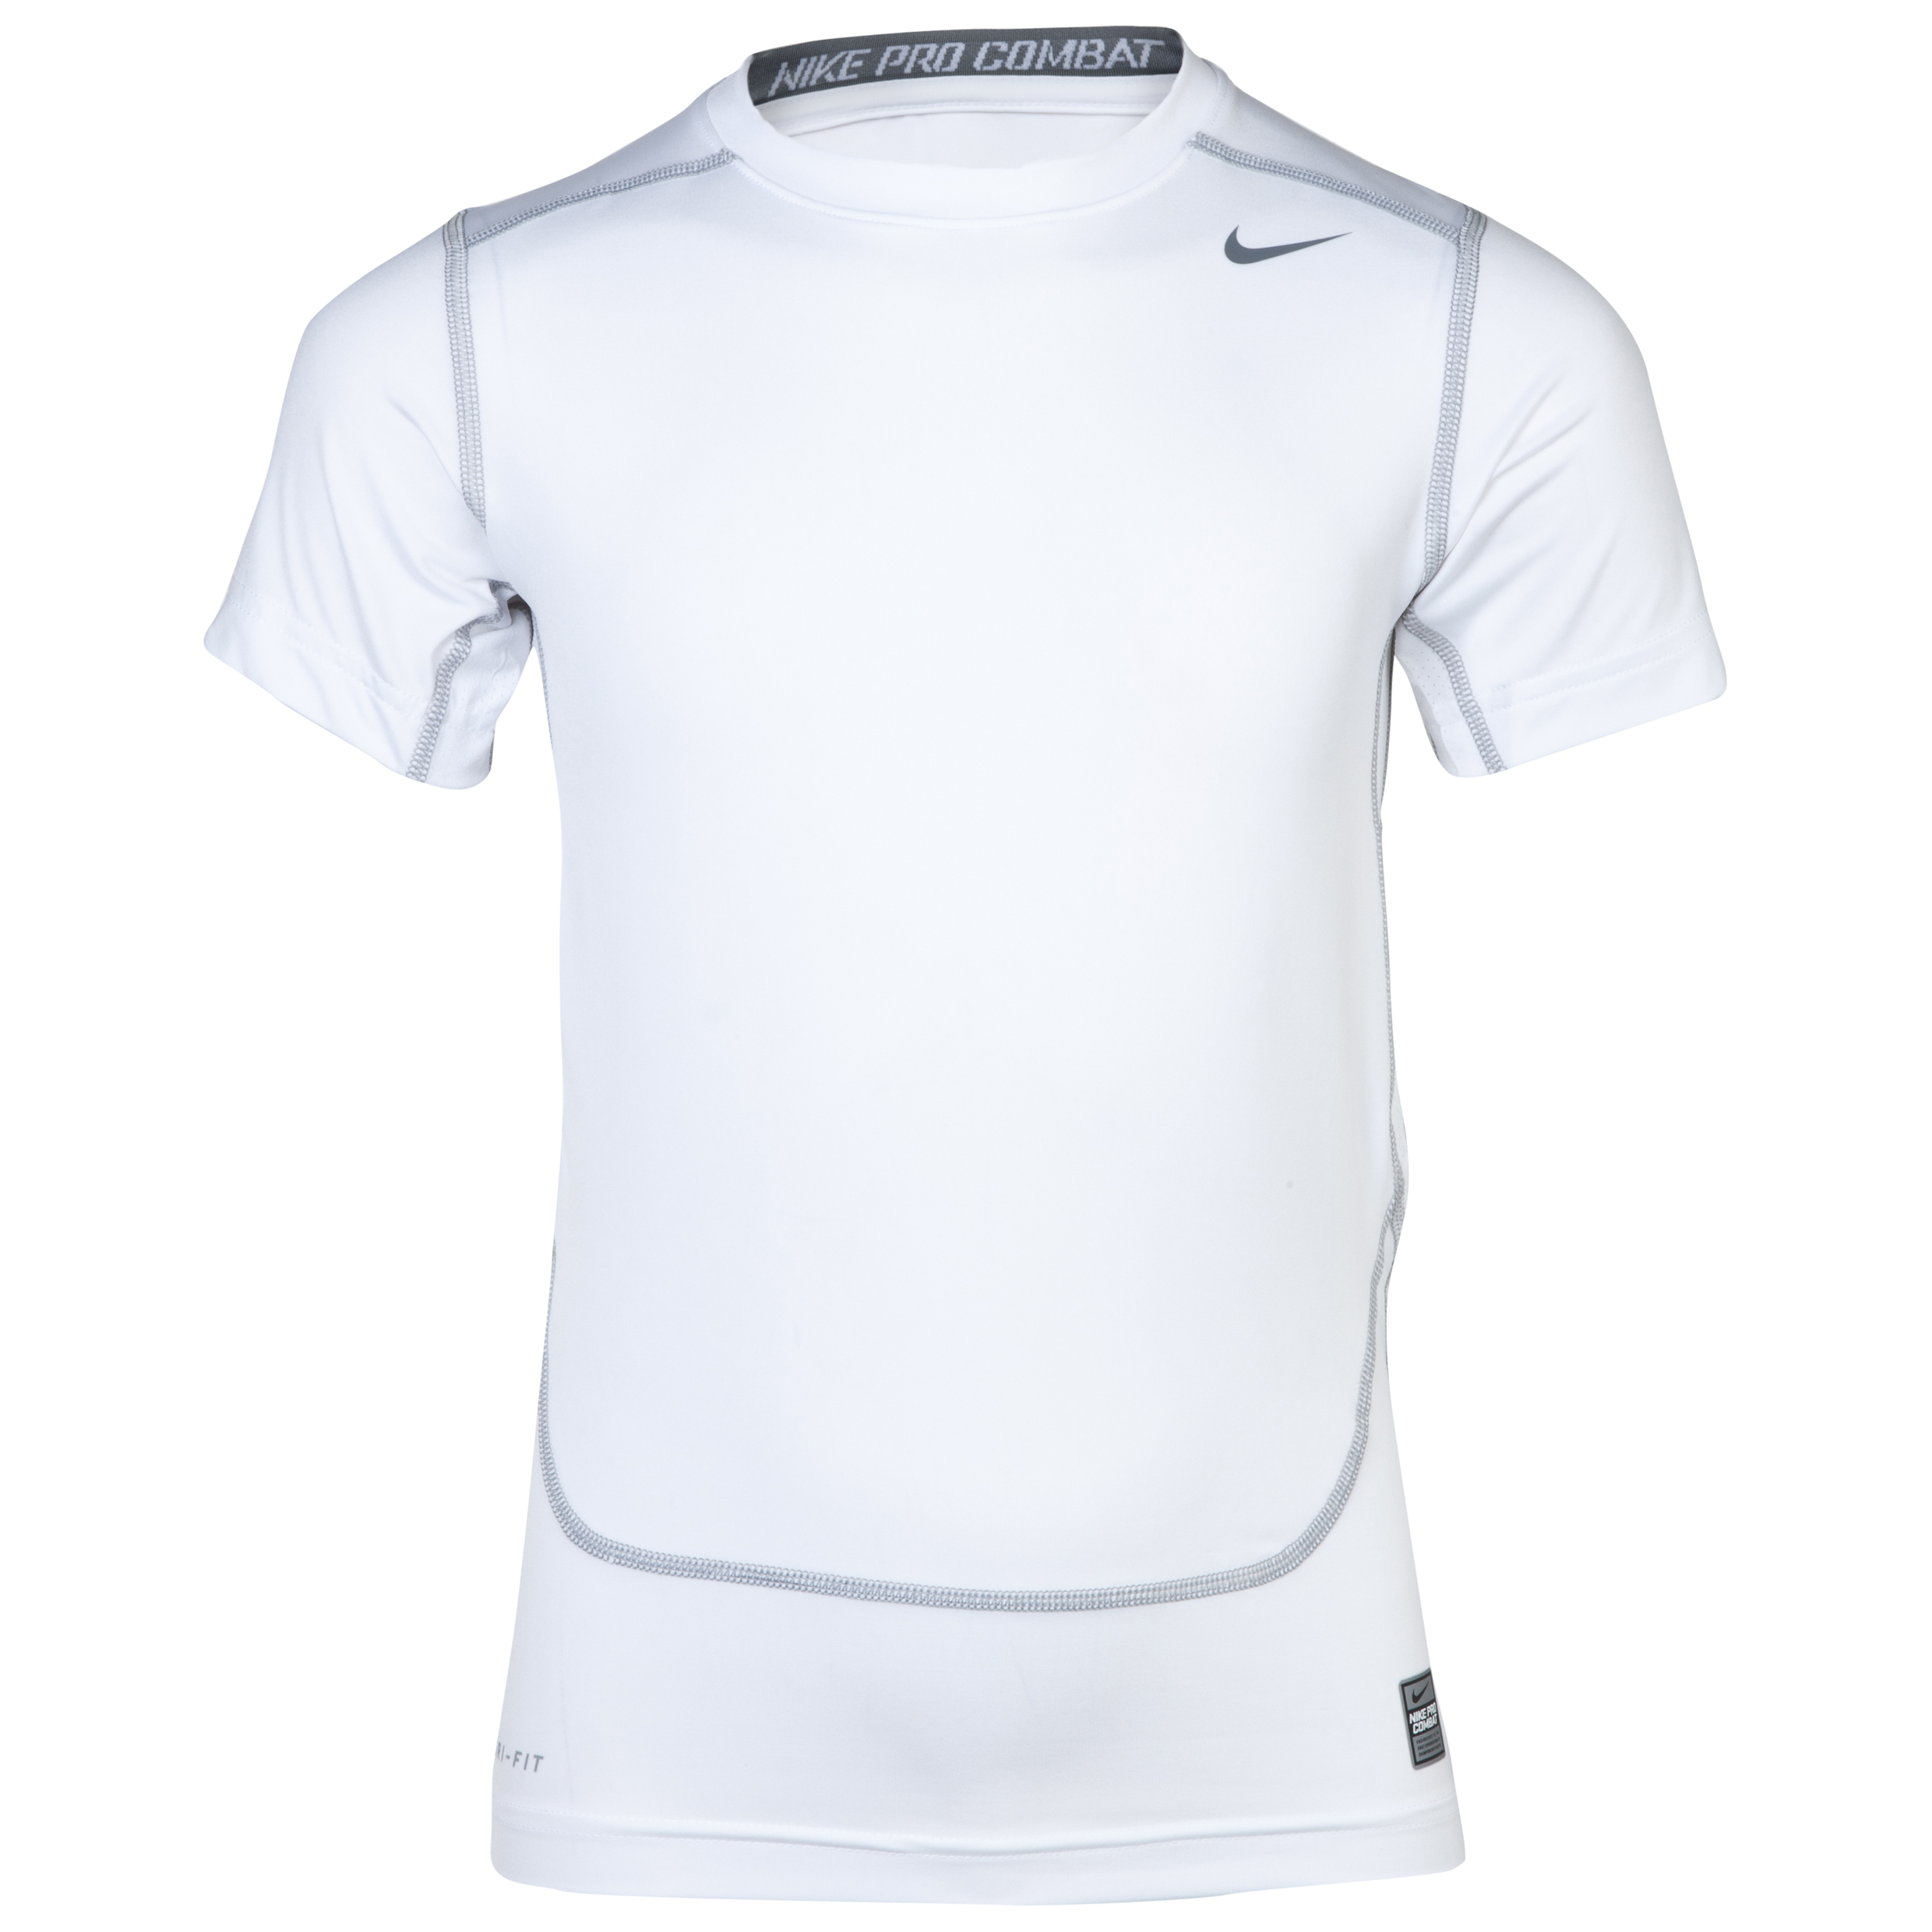 Nike Pro Combat Core Base Layer Top - Kids White